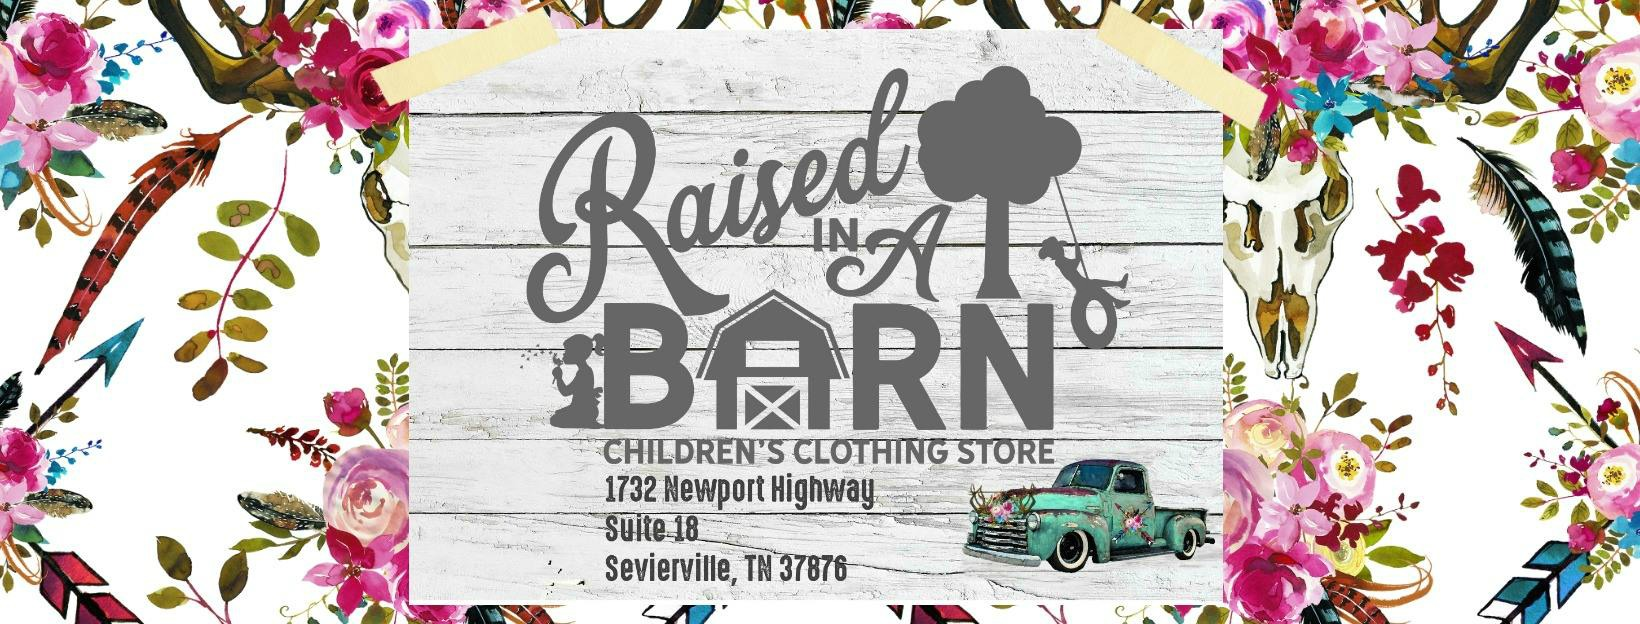 Raised In A Barn Children's Clothing Store